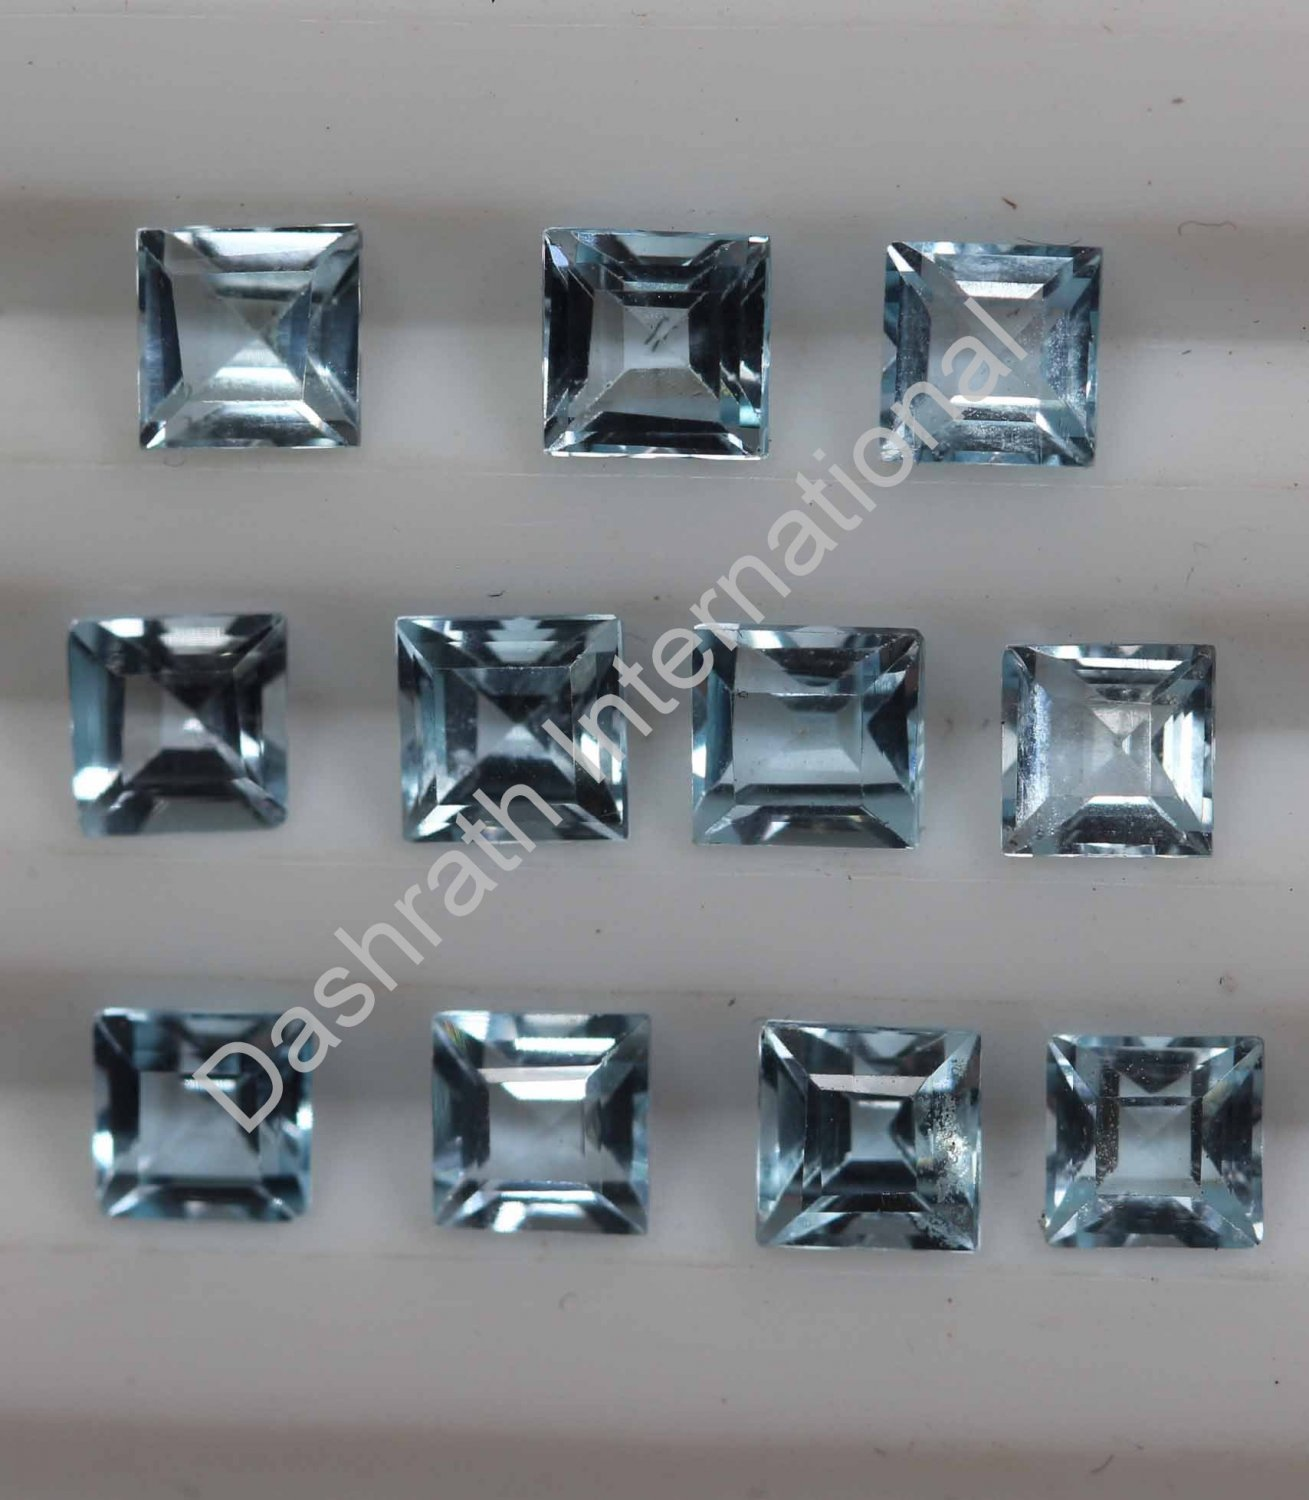 6mm  Natural Sky Blue Topaz Faceted Cut Square 100 Pieces Lot Top Quality Loose Gemstone